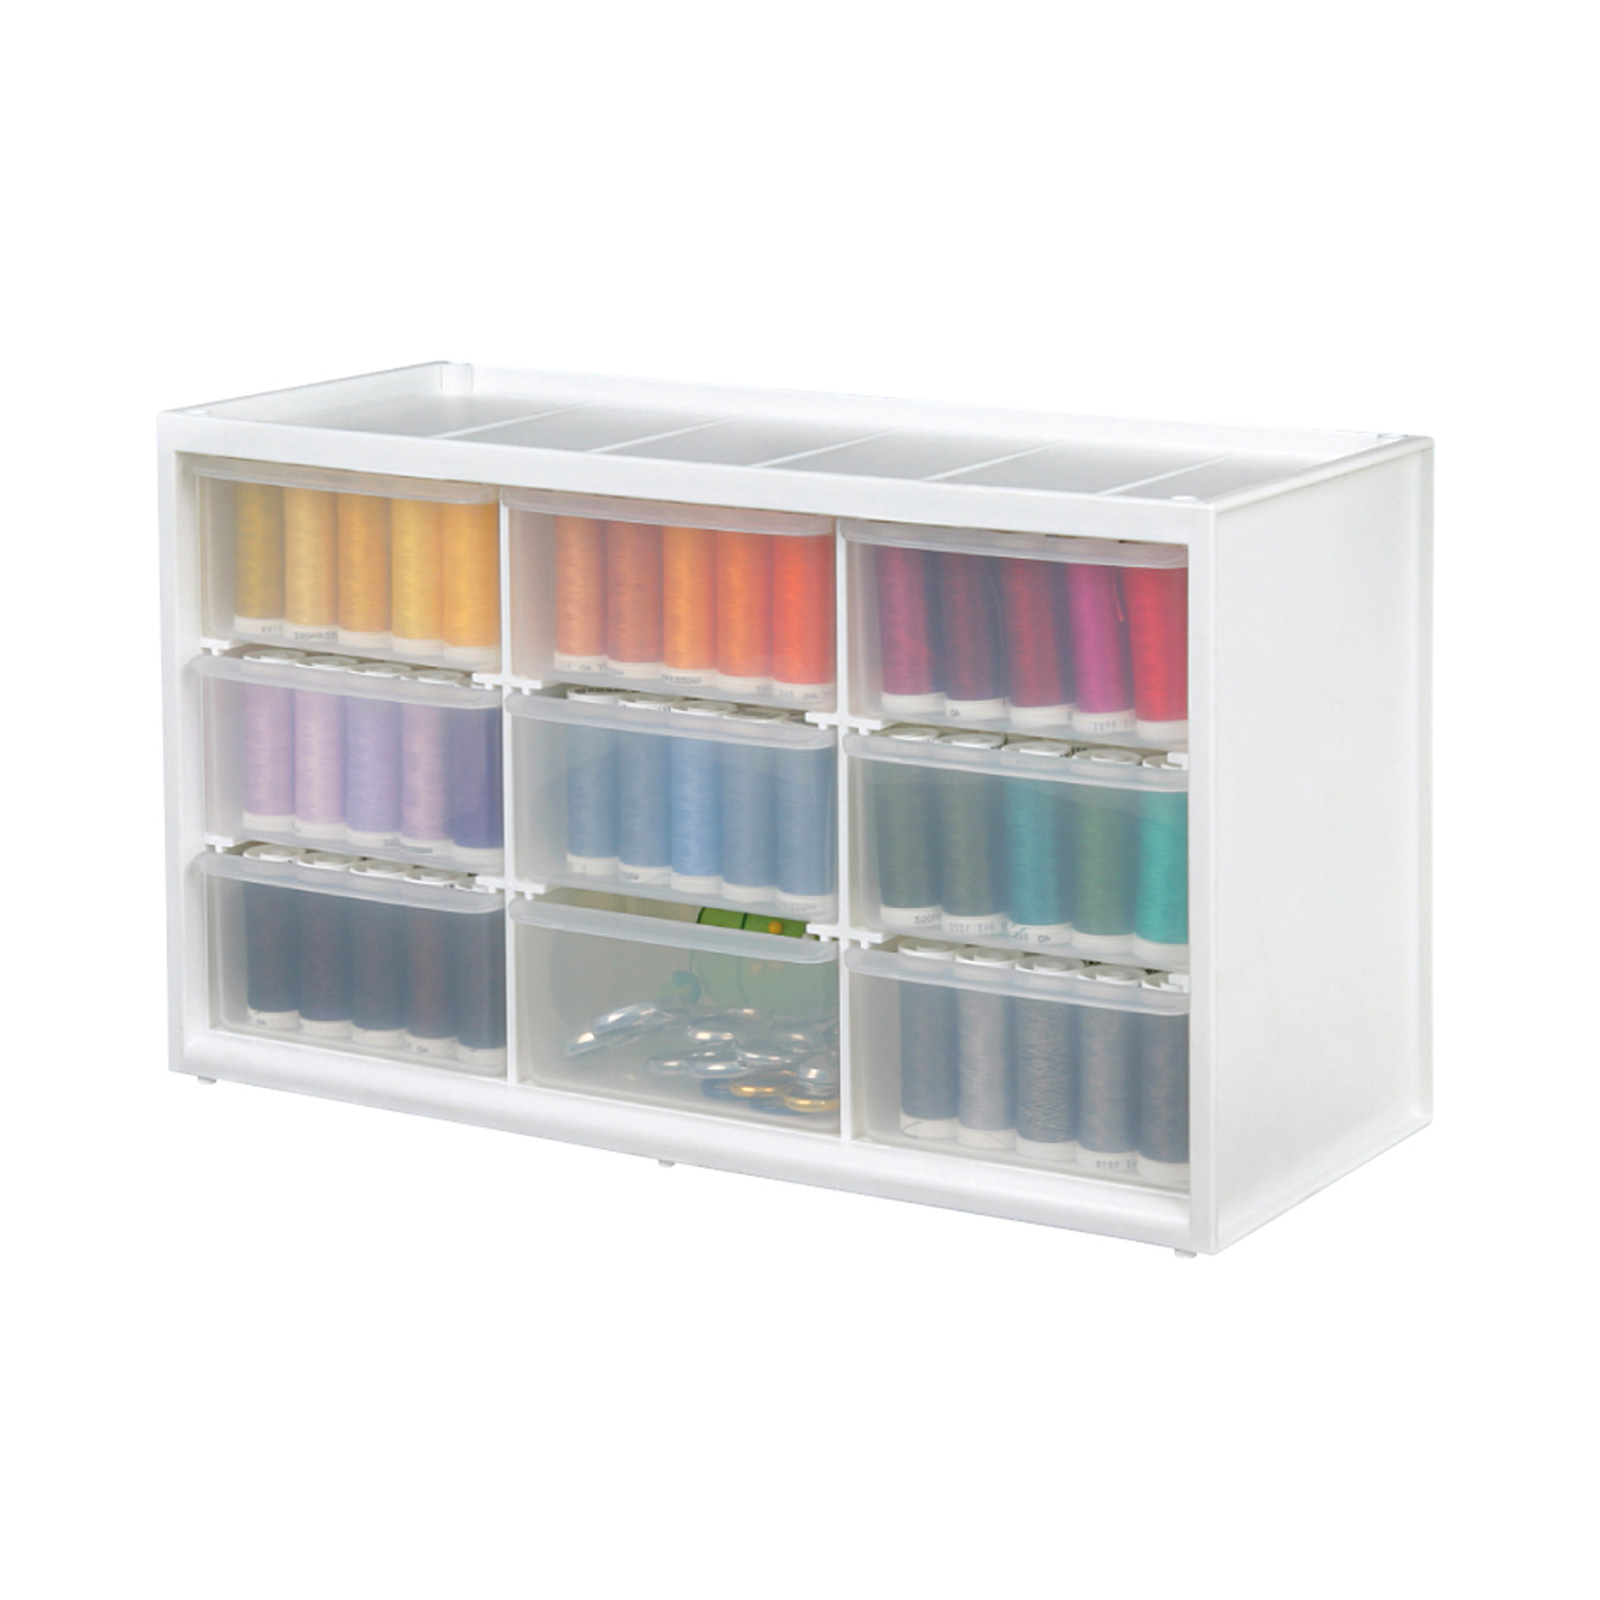 ArtBin Store-In-Drawer Cabinet-14.375'' x 6'' x 8.675